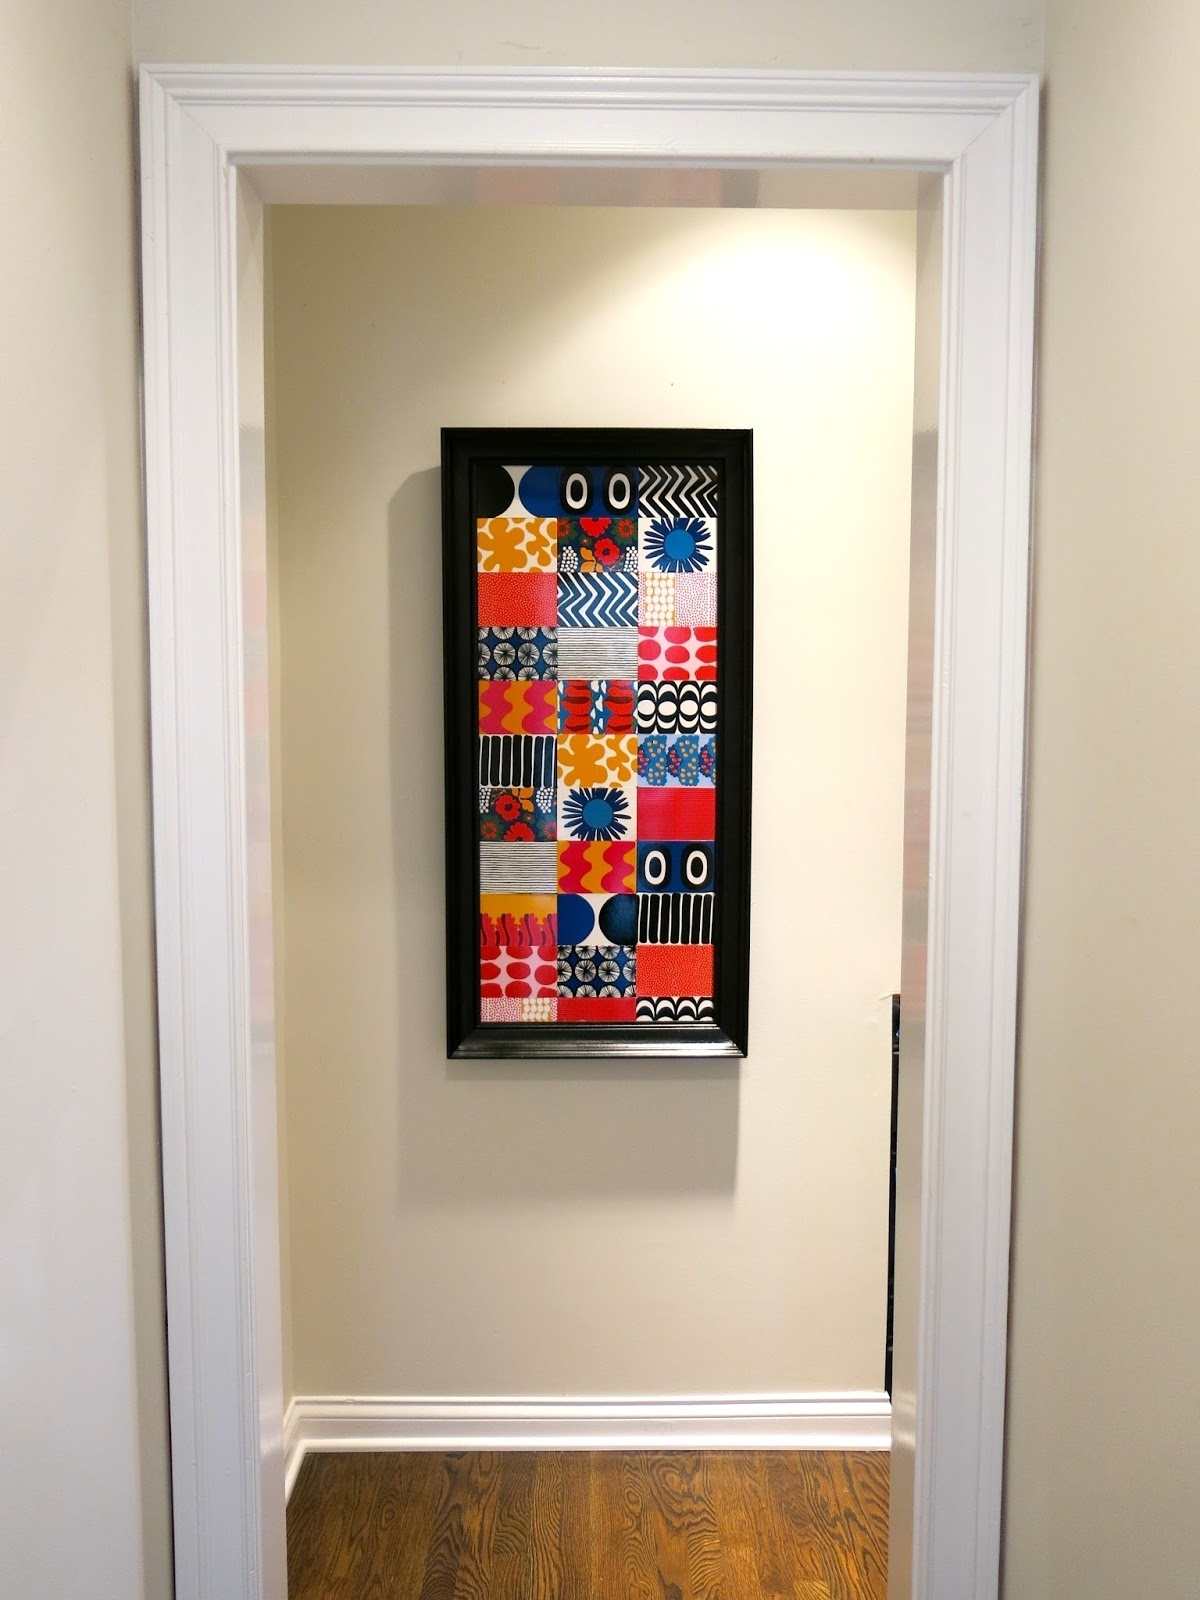 Cassie Stephens: Diy: Marimekko Memory Game Wallhanging Throughout Most Current Marimekko 'karkuteilla' Fabric Wall Art (View 15 of 15)